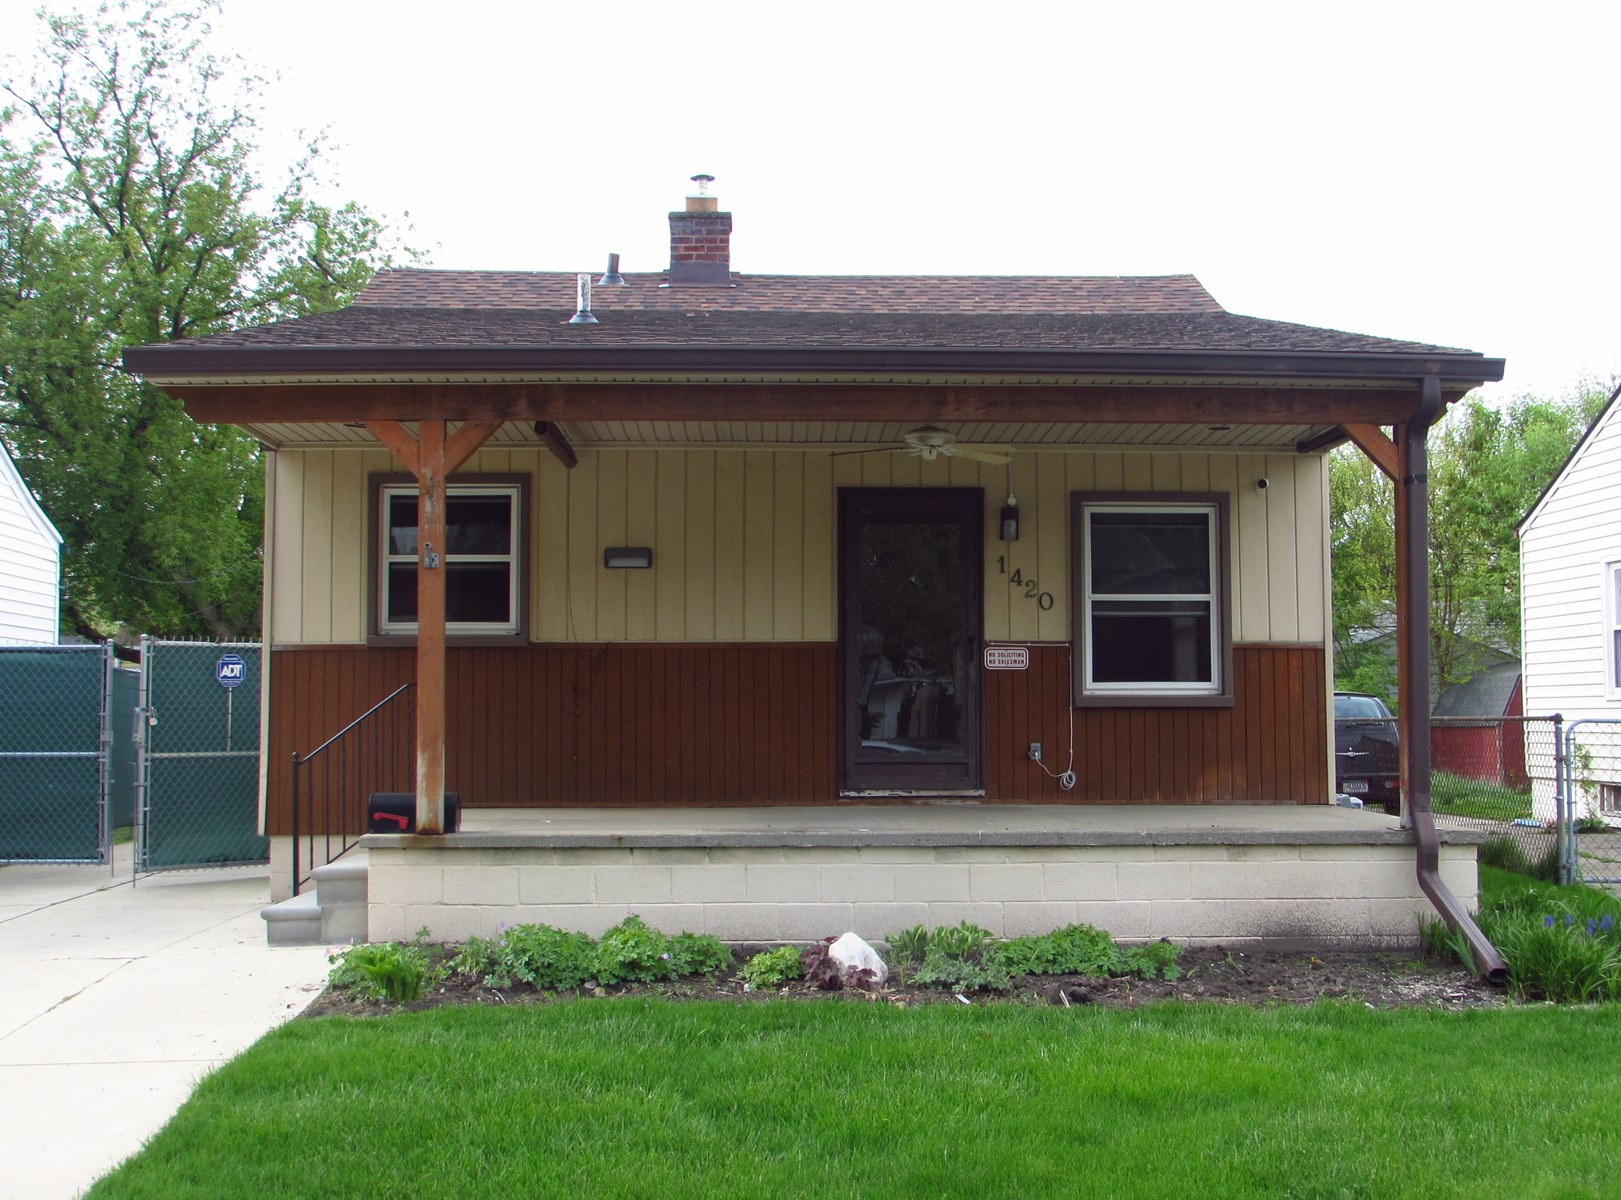 Perfect starter home or investment property!